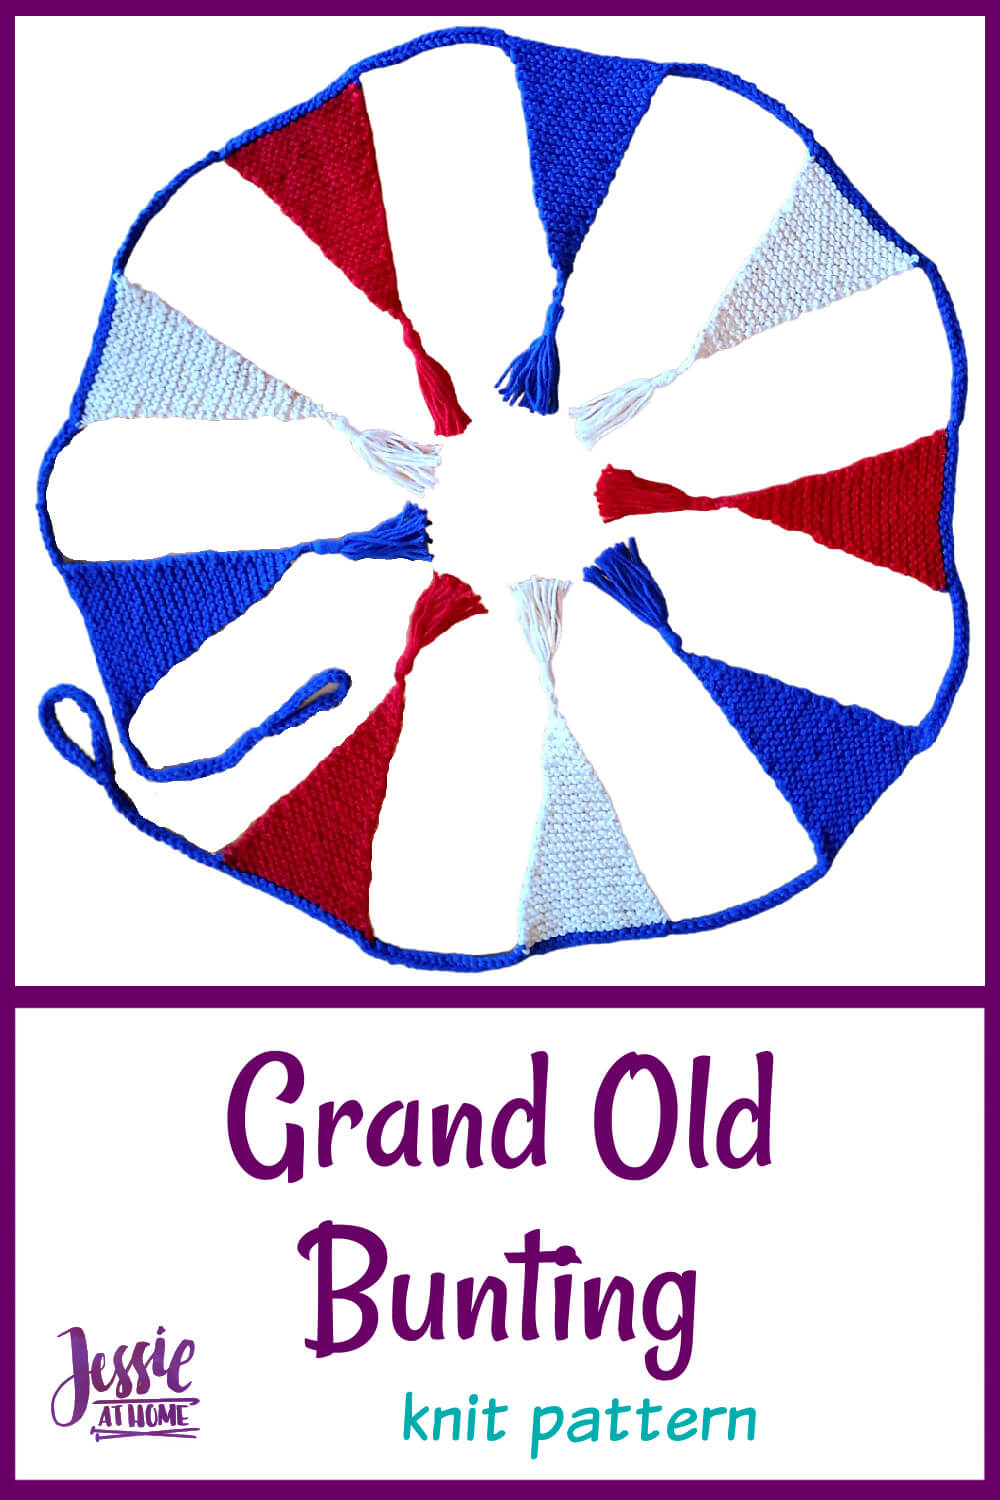 Grand Old Bunting - great for outdoor spaces